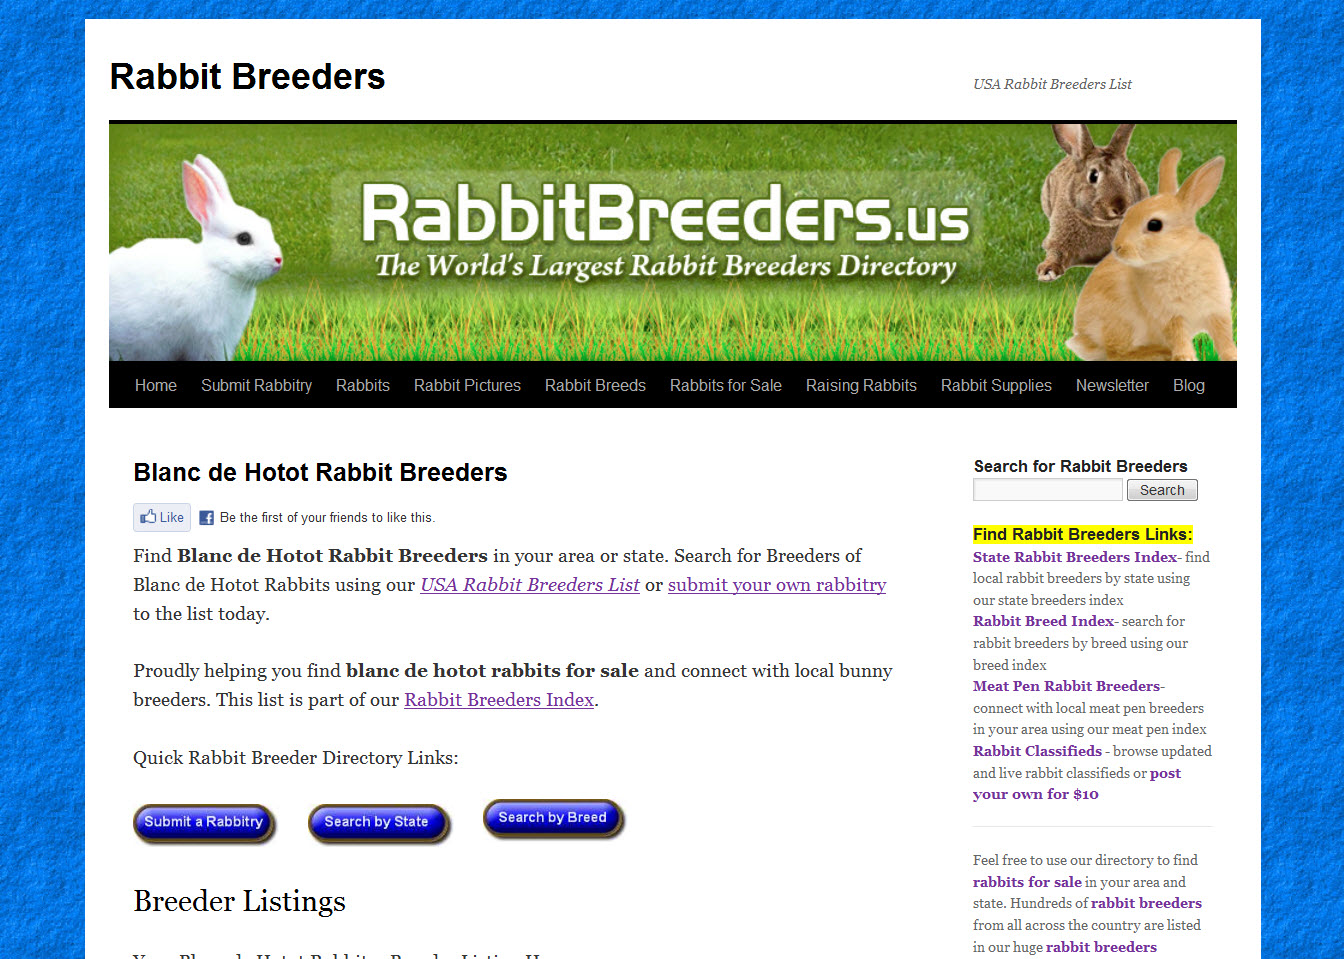 Blanc de Hotot Rabbit Breeders